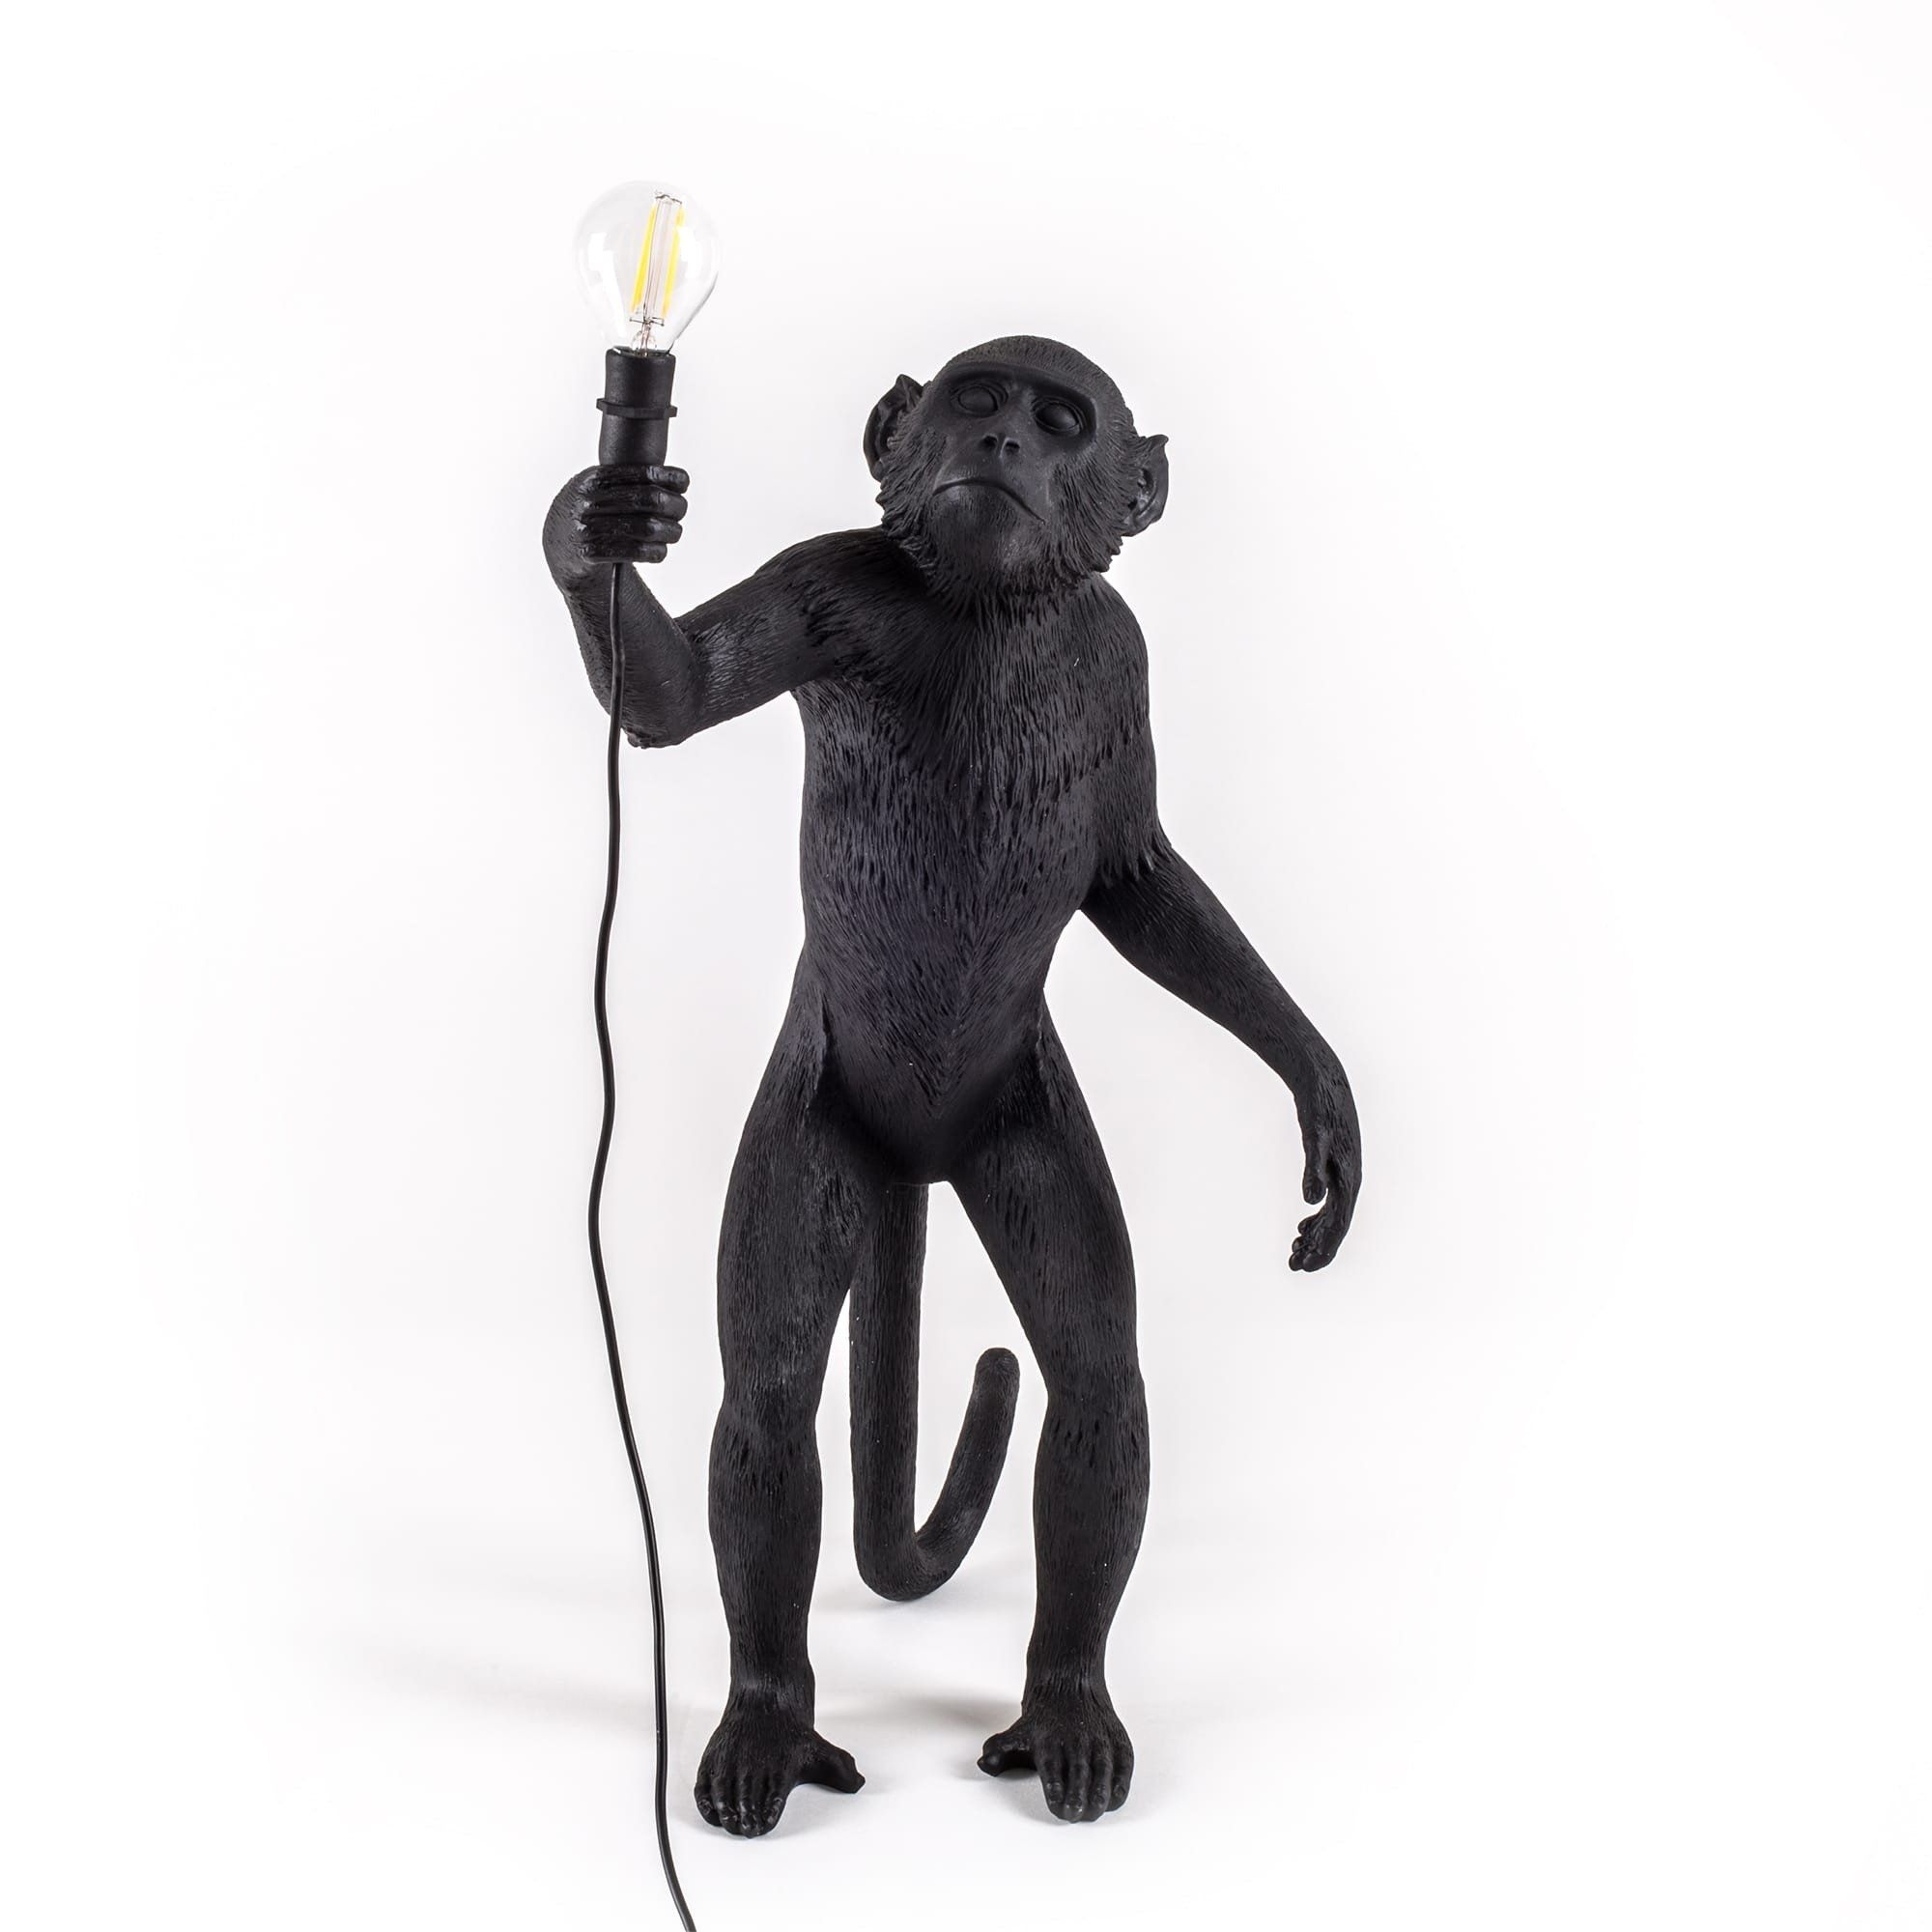 The Monkey Lamp In Black Standing Version In 2020 Black Lamps Lamp Rope Lamp